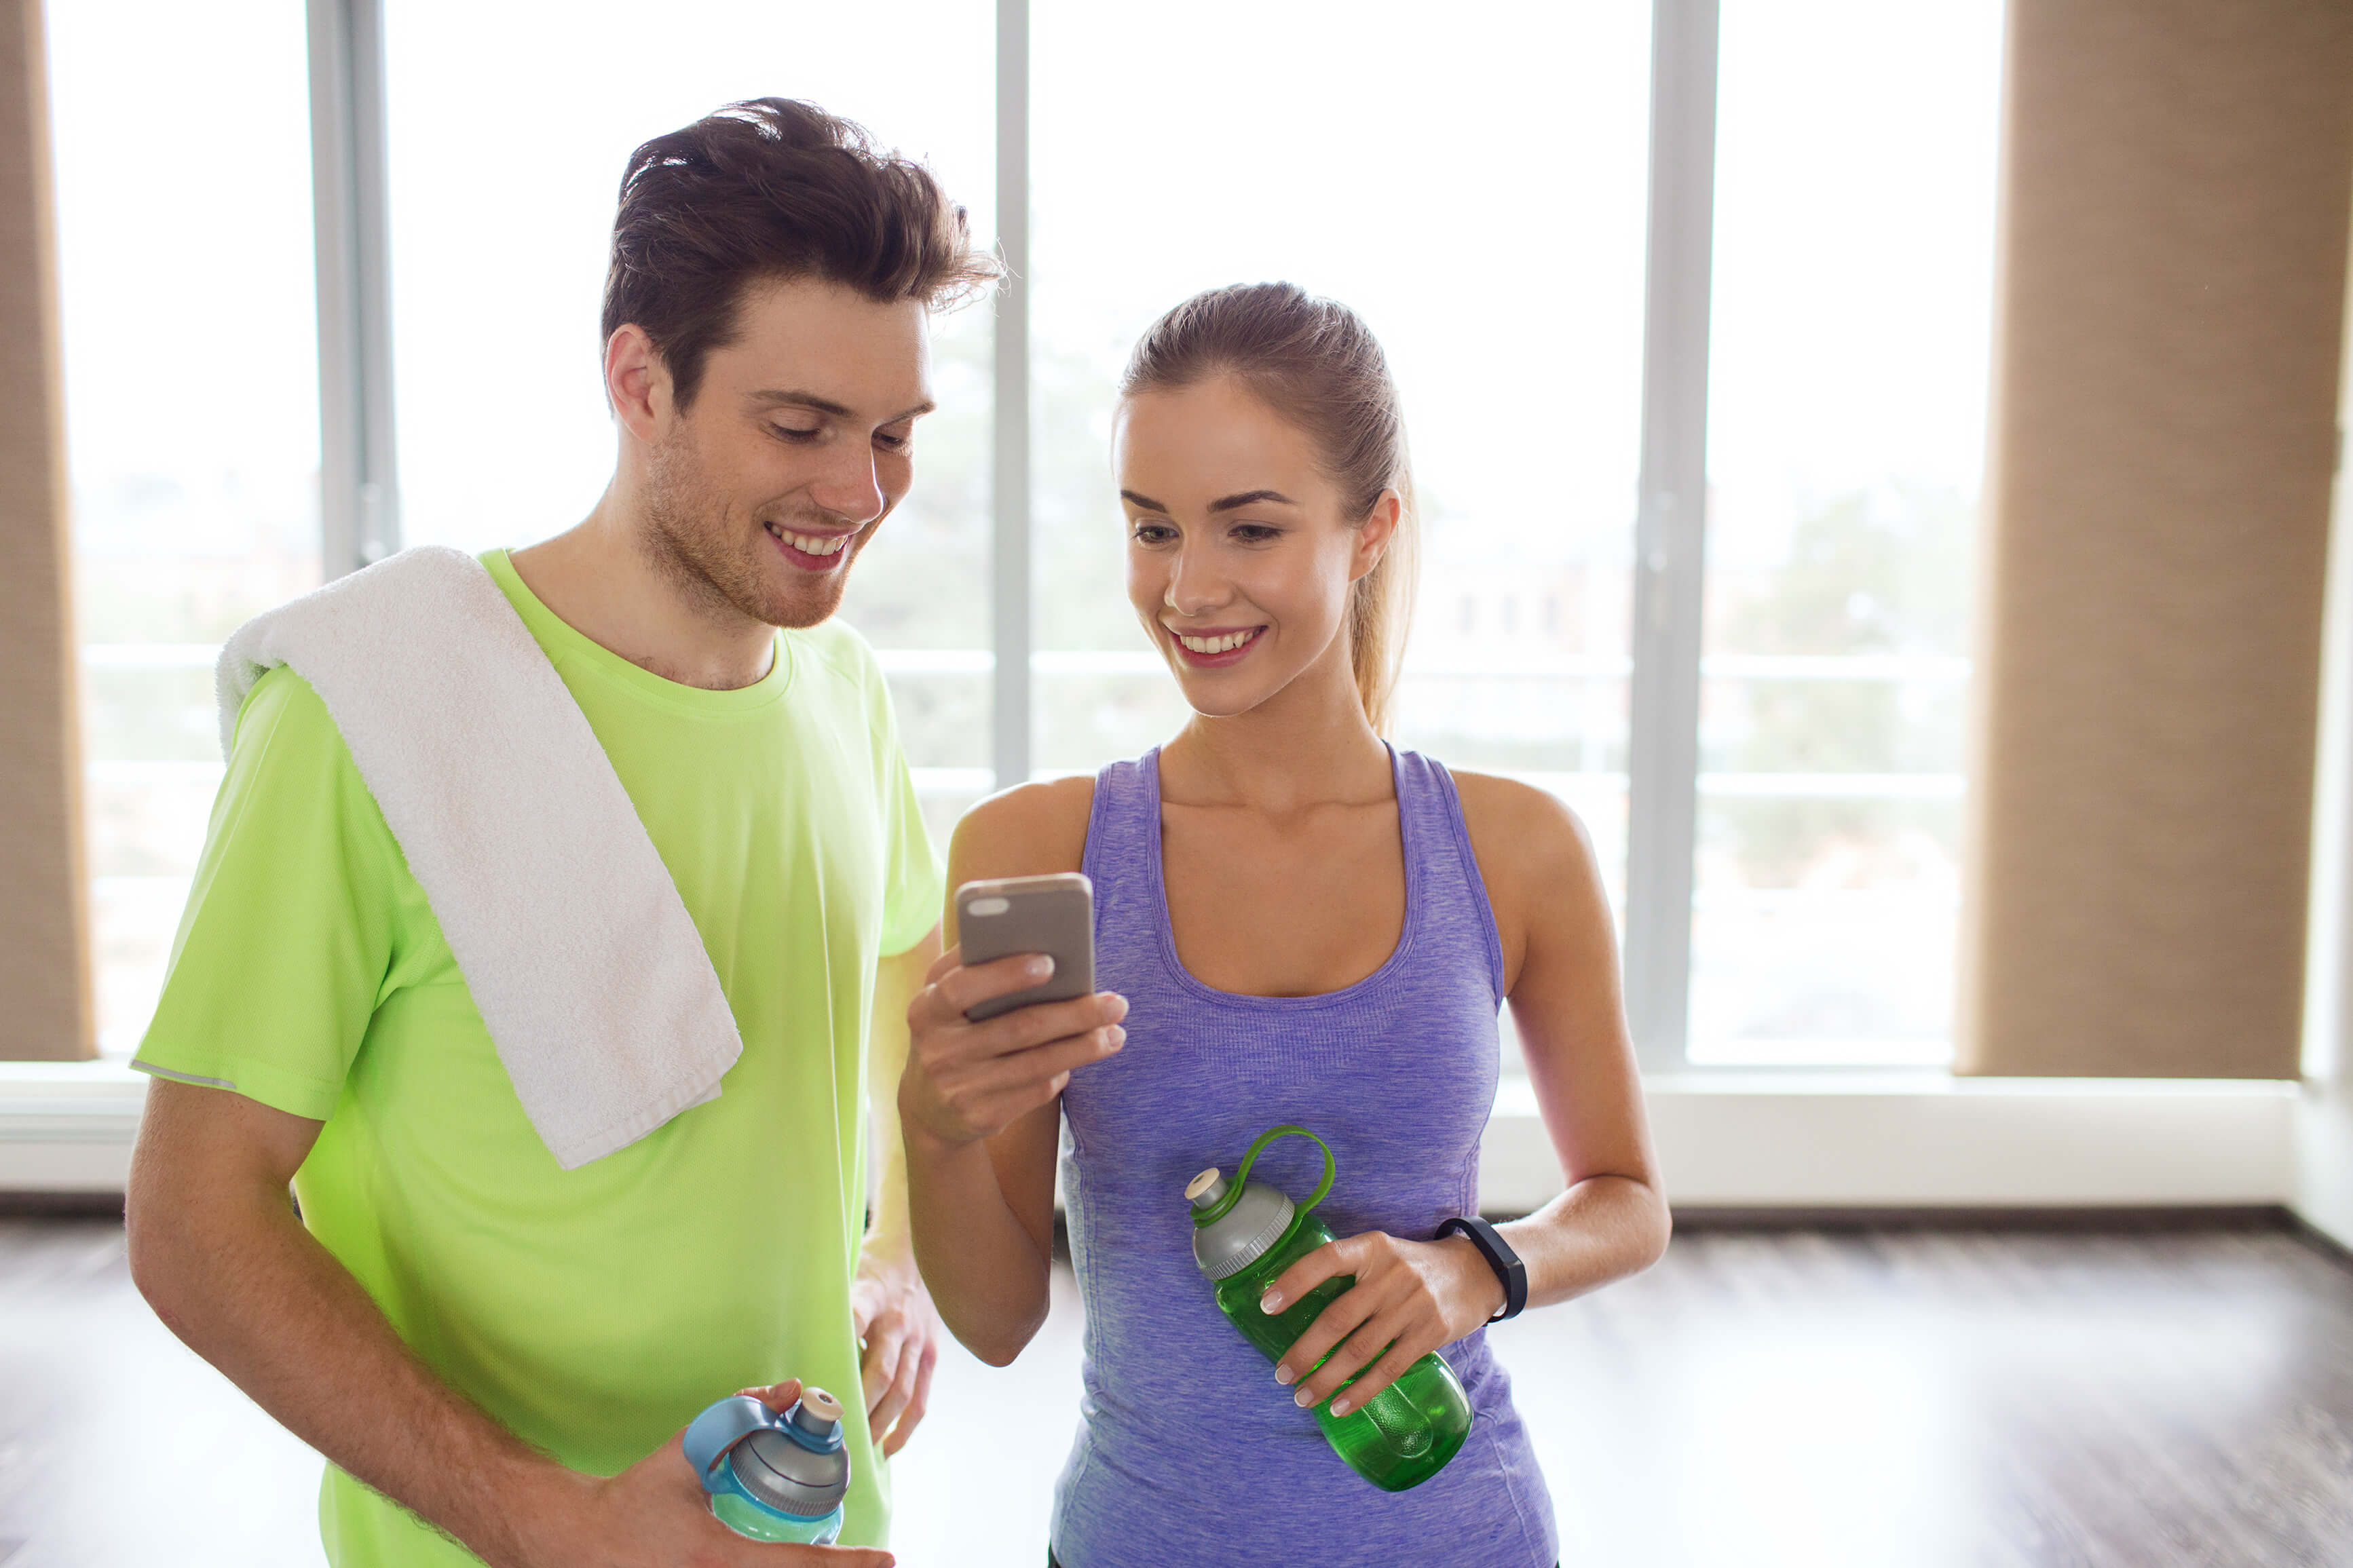 Two people in the gym looking at a phone